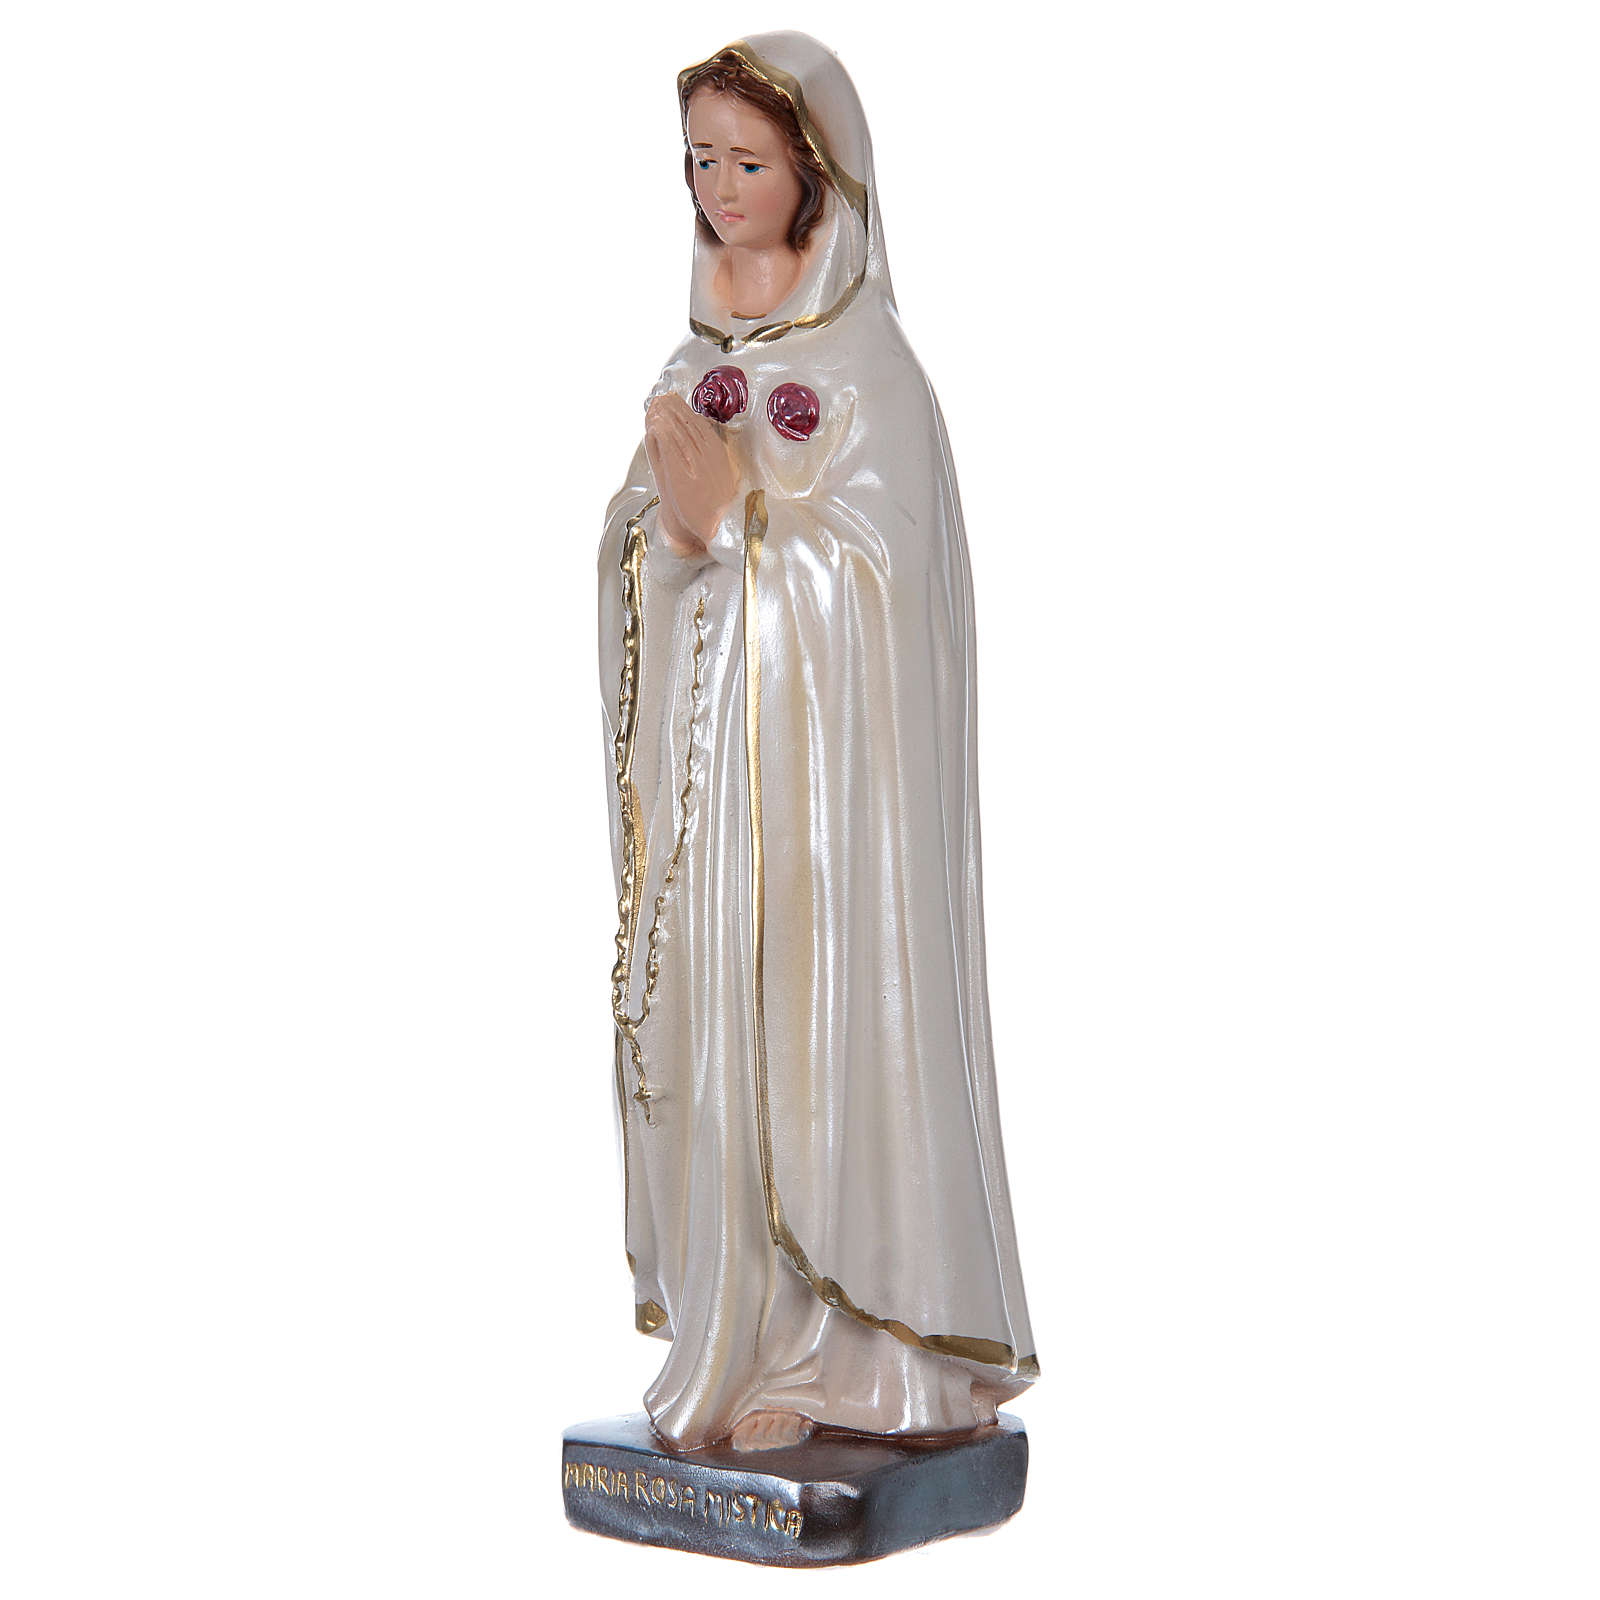 St Mystic Rose 20 cm in mother-of-pearl plaster 4